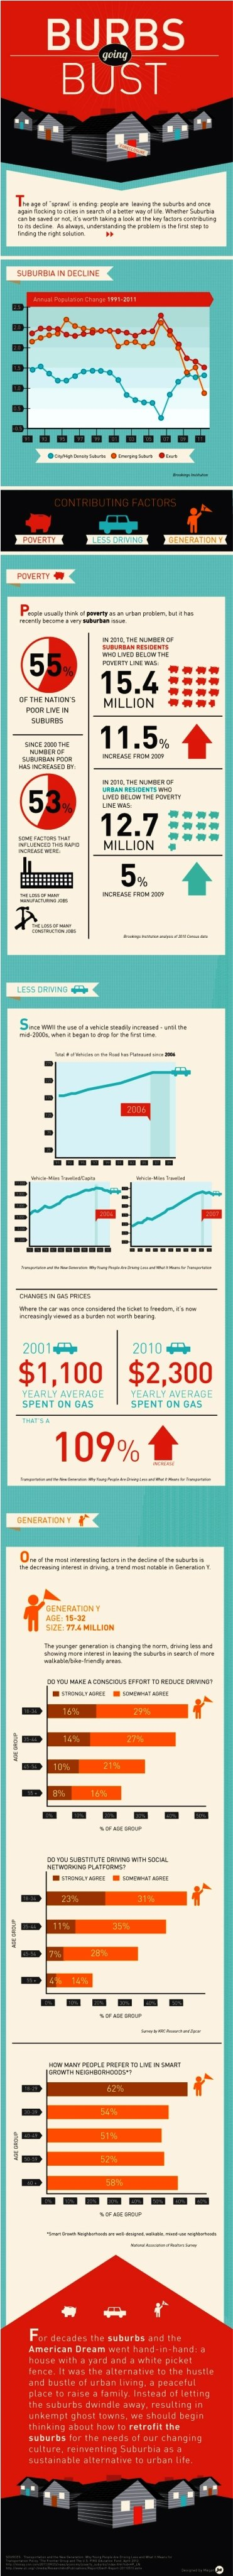 Burbs going BUST #infographic